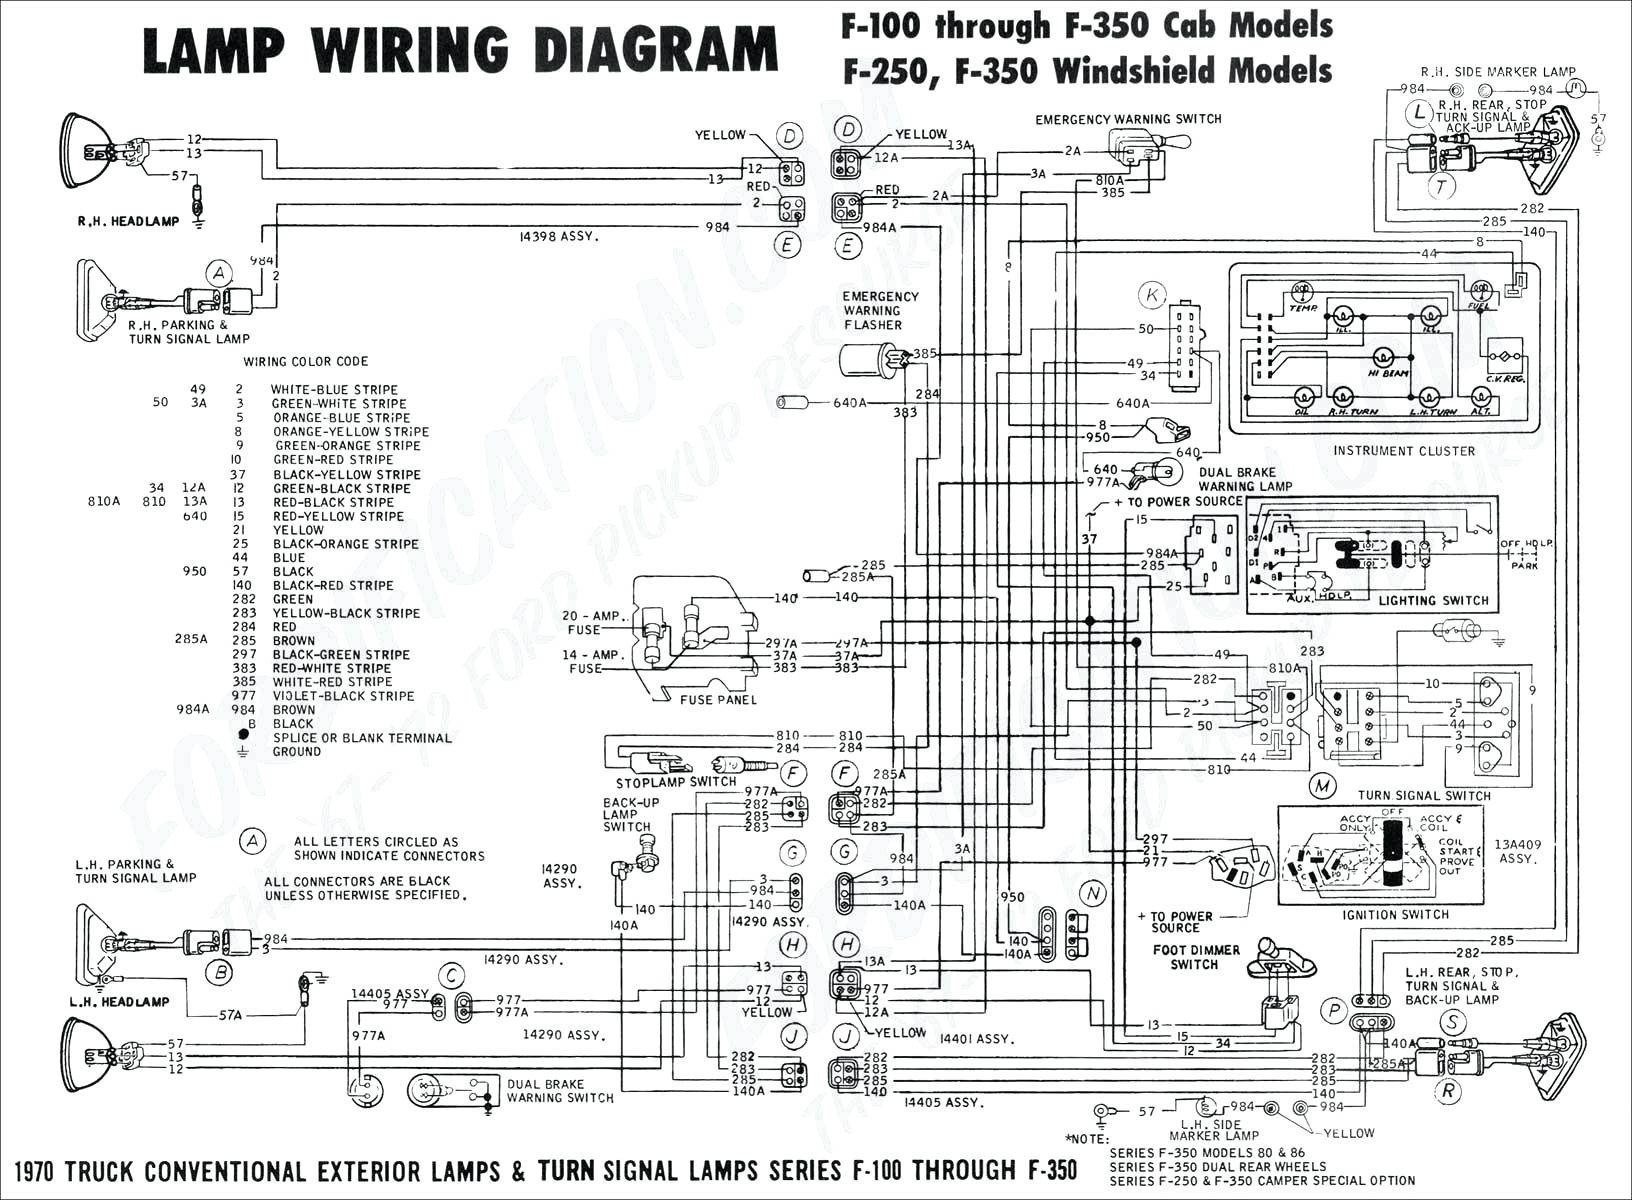 [DVZP_7254]   Mazda Tribute V6 Wiring Diagram | Wiring Diagram | Mazda Tribute V6 Engine Diagram |  | Wiring Diagram - AutoScout24